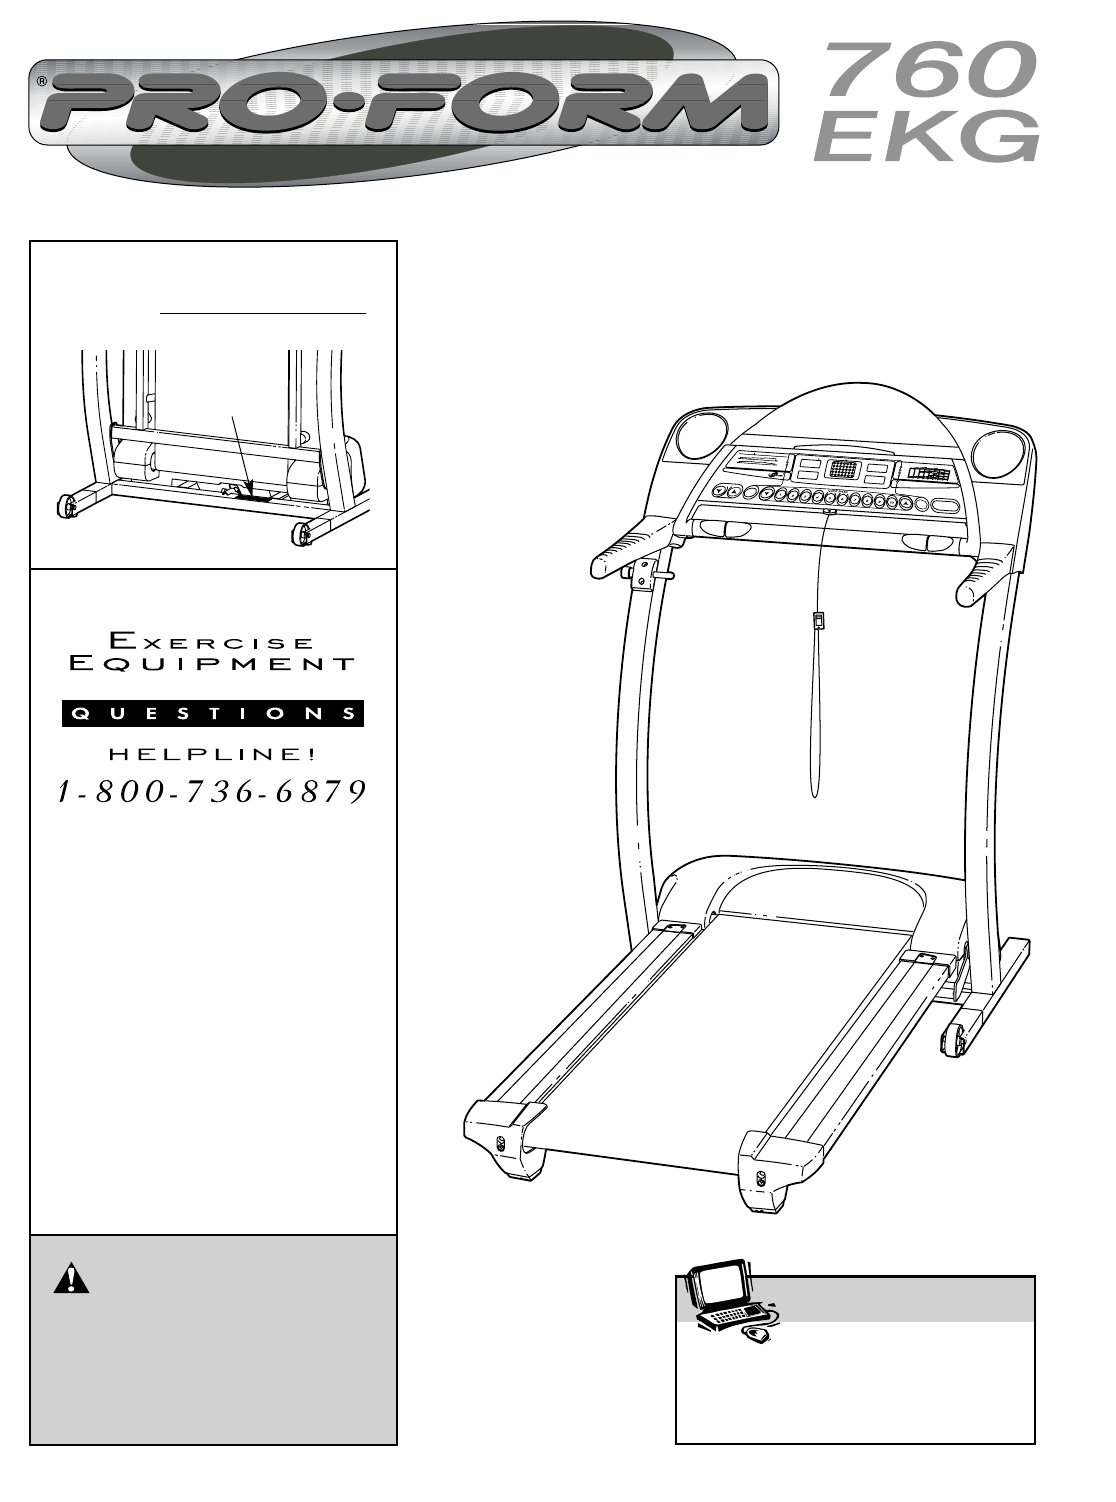 PROFORM 770 EKG TREADMILL MANUAL EBOOK DOWNLOAD